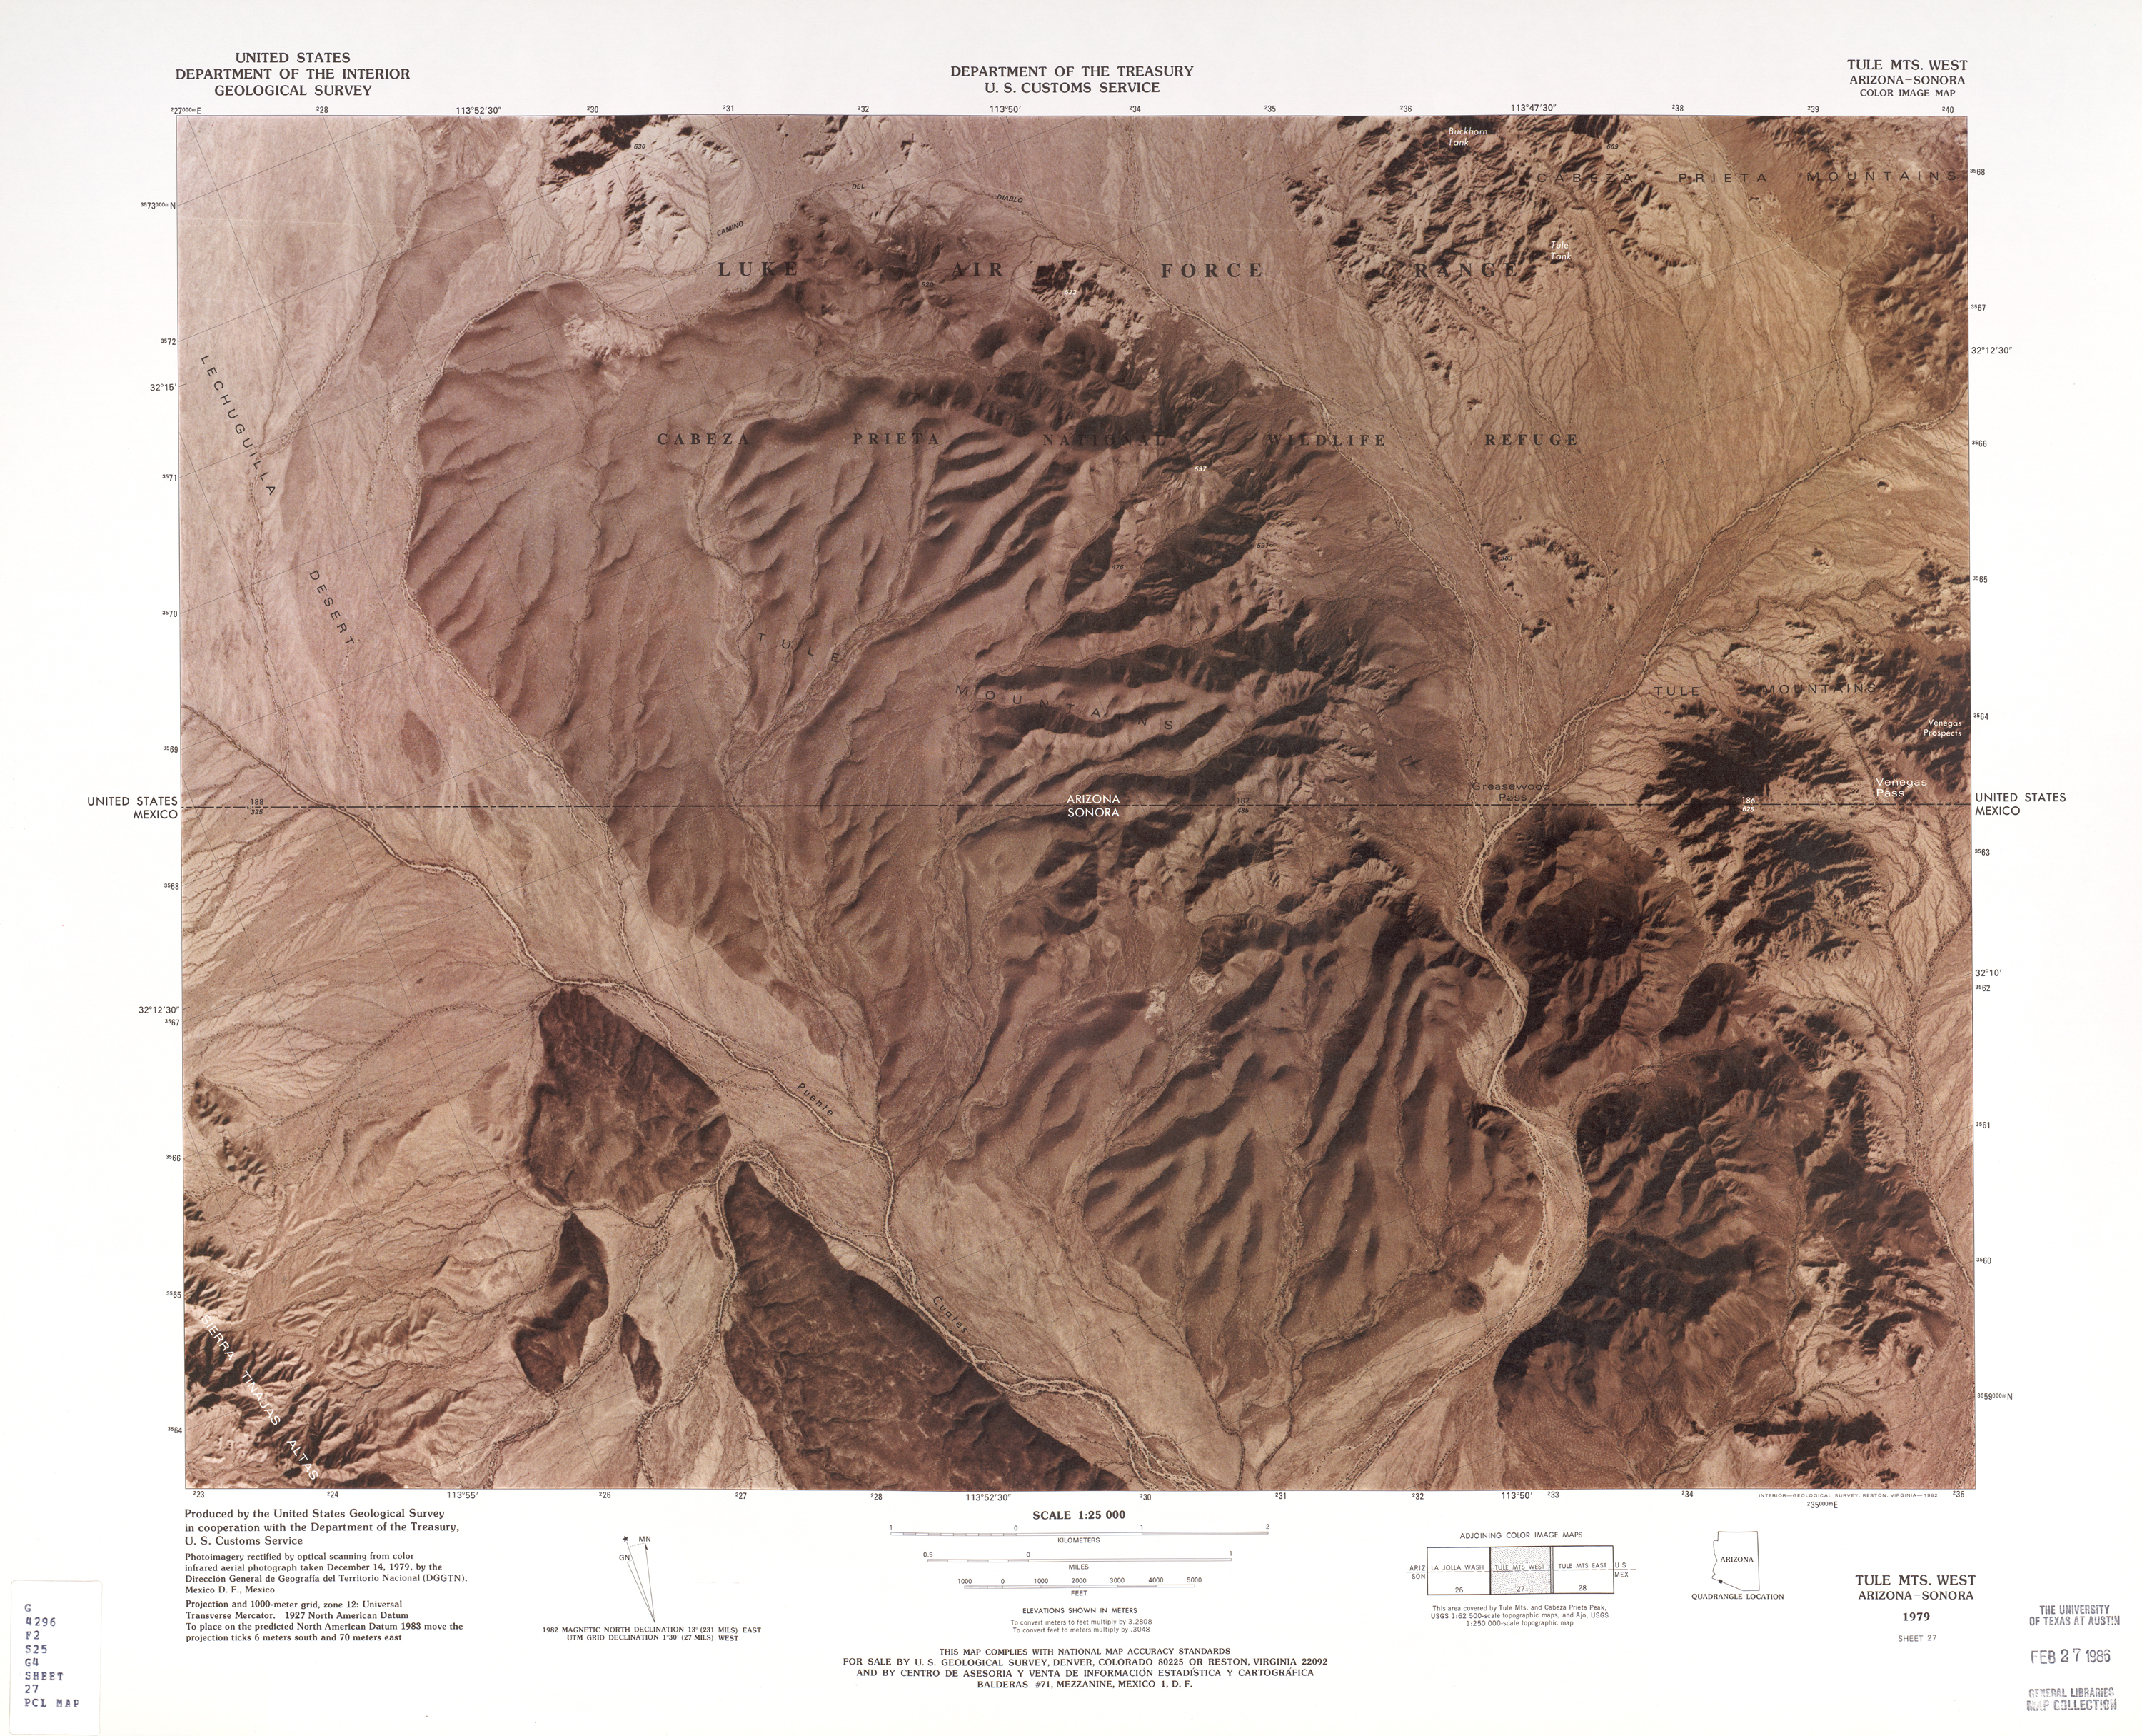 United States-Mexico Border Map, Tule Mts. West